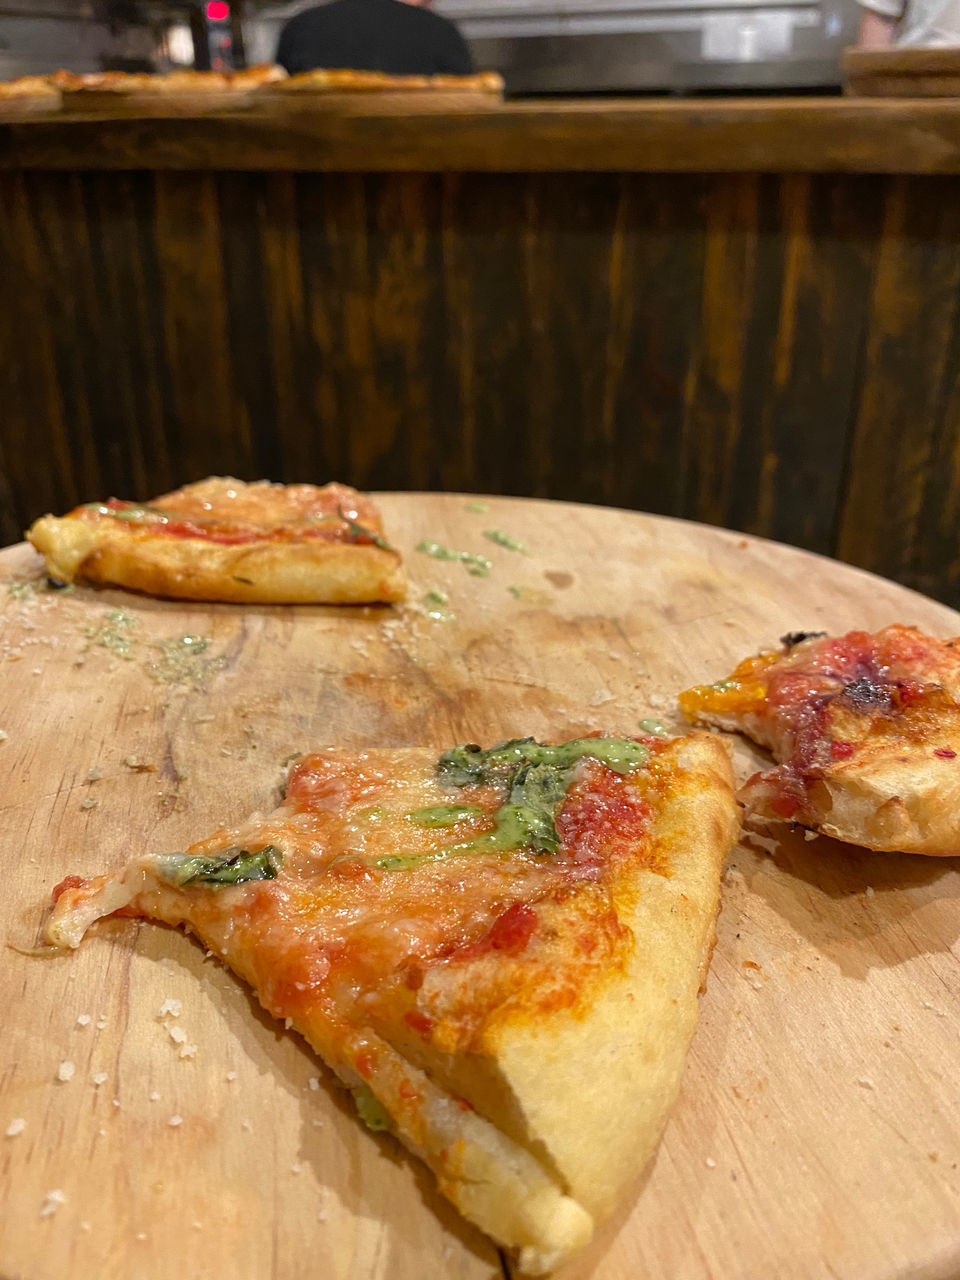 food and drink, food, freshness, pizza, table, ready-to-eat, indoors, still life, wood - material, cutting board, serving size, no people, unhealthy eating, close-up, indulgence, bread, baked, focus on foreground, vegetable, fast food, snack, garnish, temptation